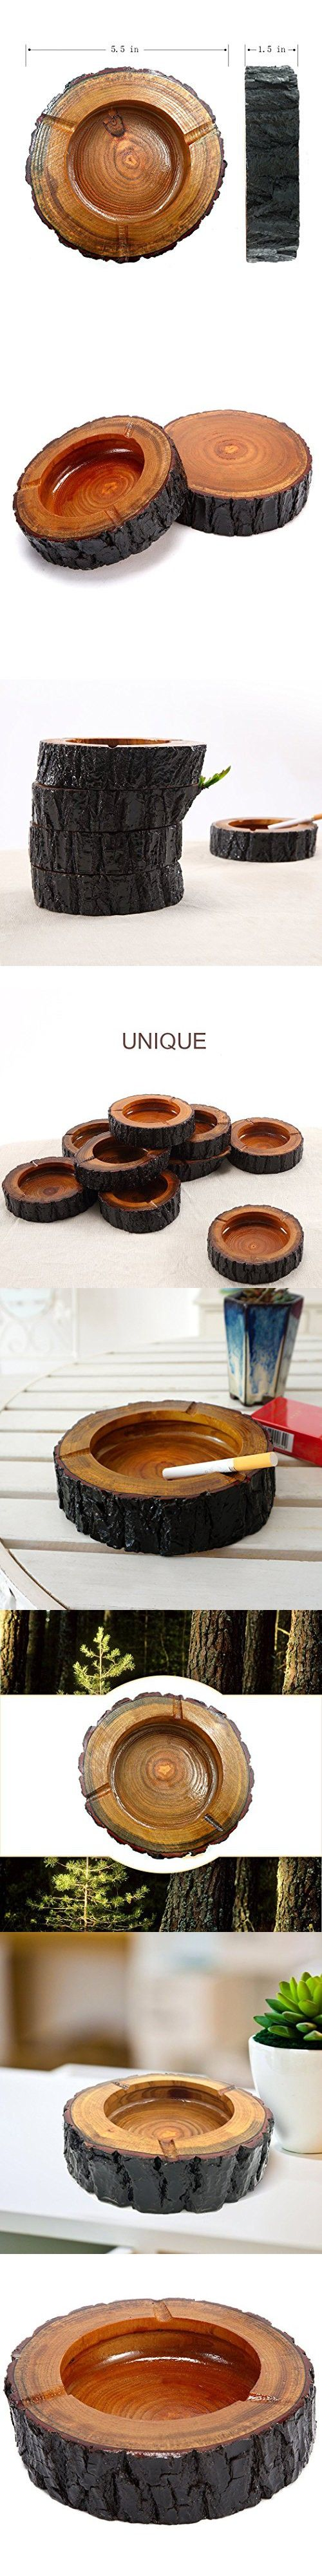 """Teagas 5.5"""" Round Original Wooden Cigarette Ashtray, Outdoors and Indoors Ash Tray"""